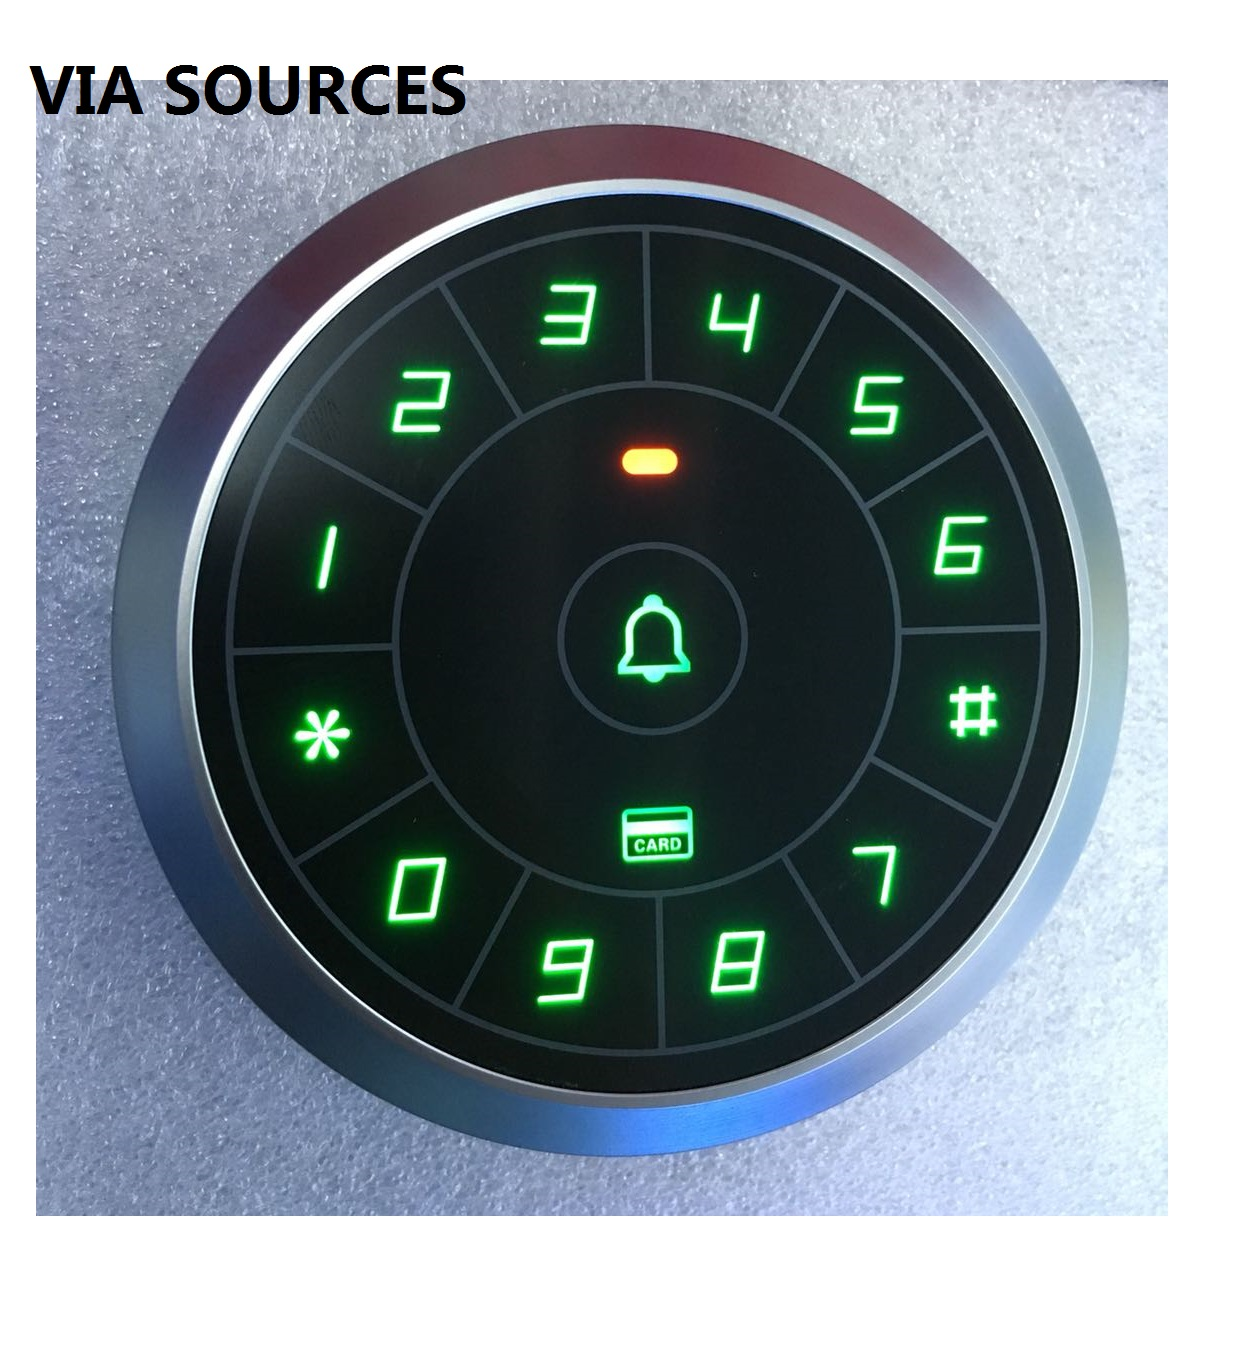 Fress Shipping Circular Touch Button 125KHz Rfid Card Reader Door Access Controller System Password Keypad C80 original access control card reader without keypad smart card reader 125khz rfid card reader door access reader manufacture